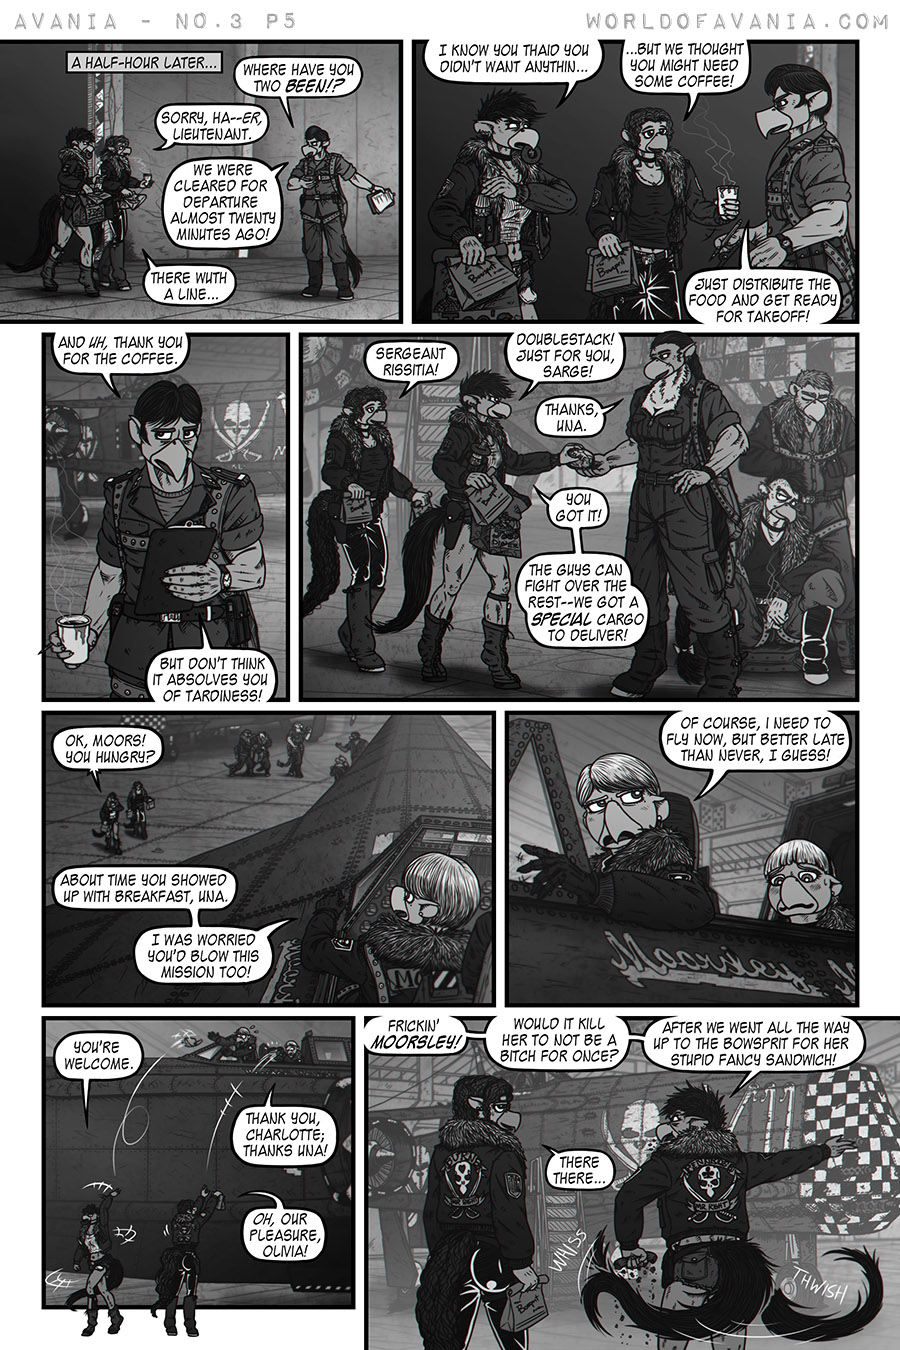 Avania Comic - Issue No.3, Page 5